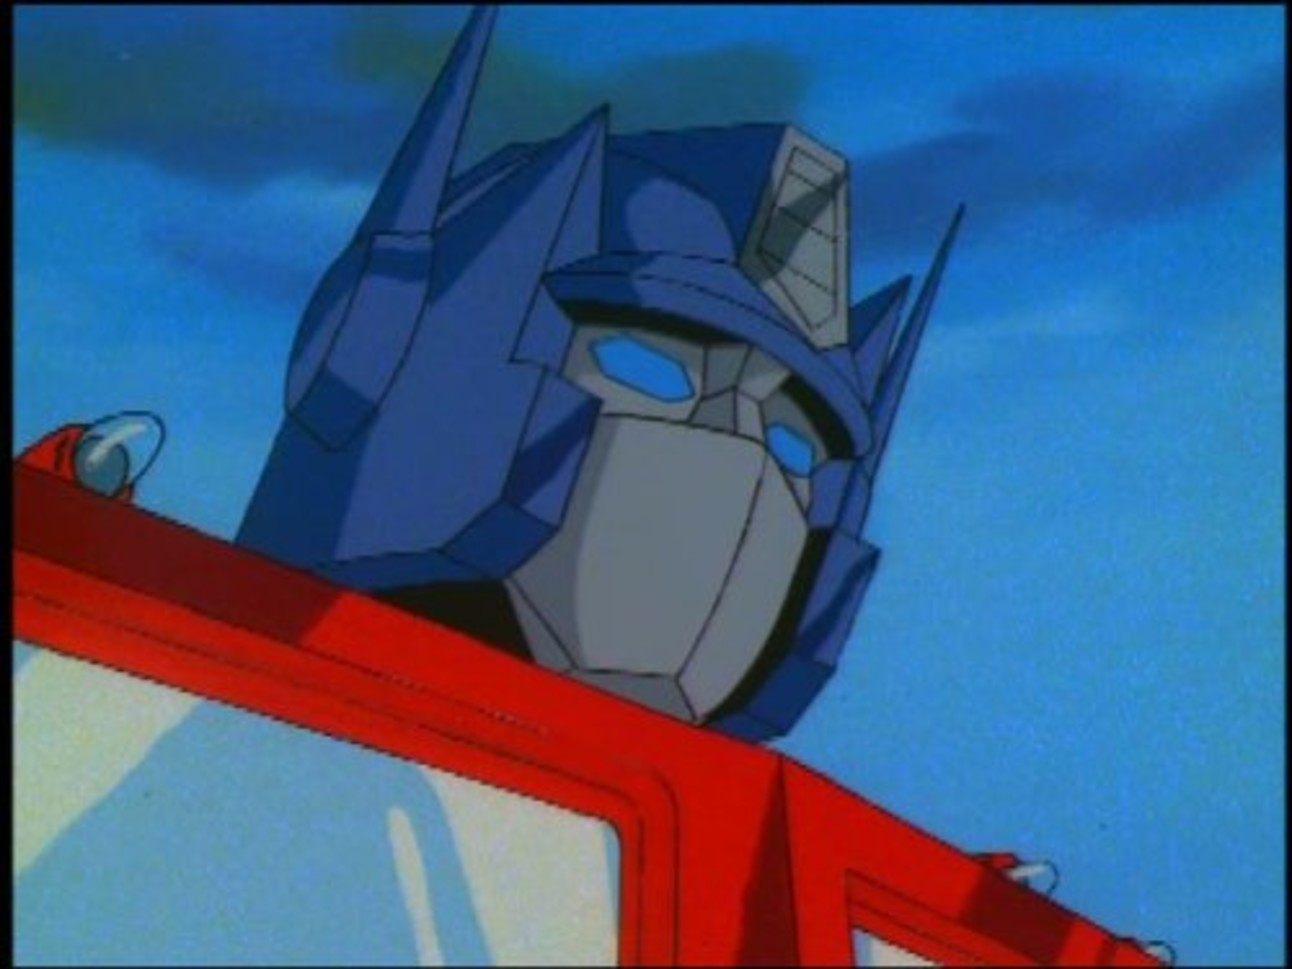 Ranking the top 20 characters from the original Transformers